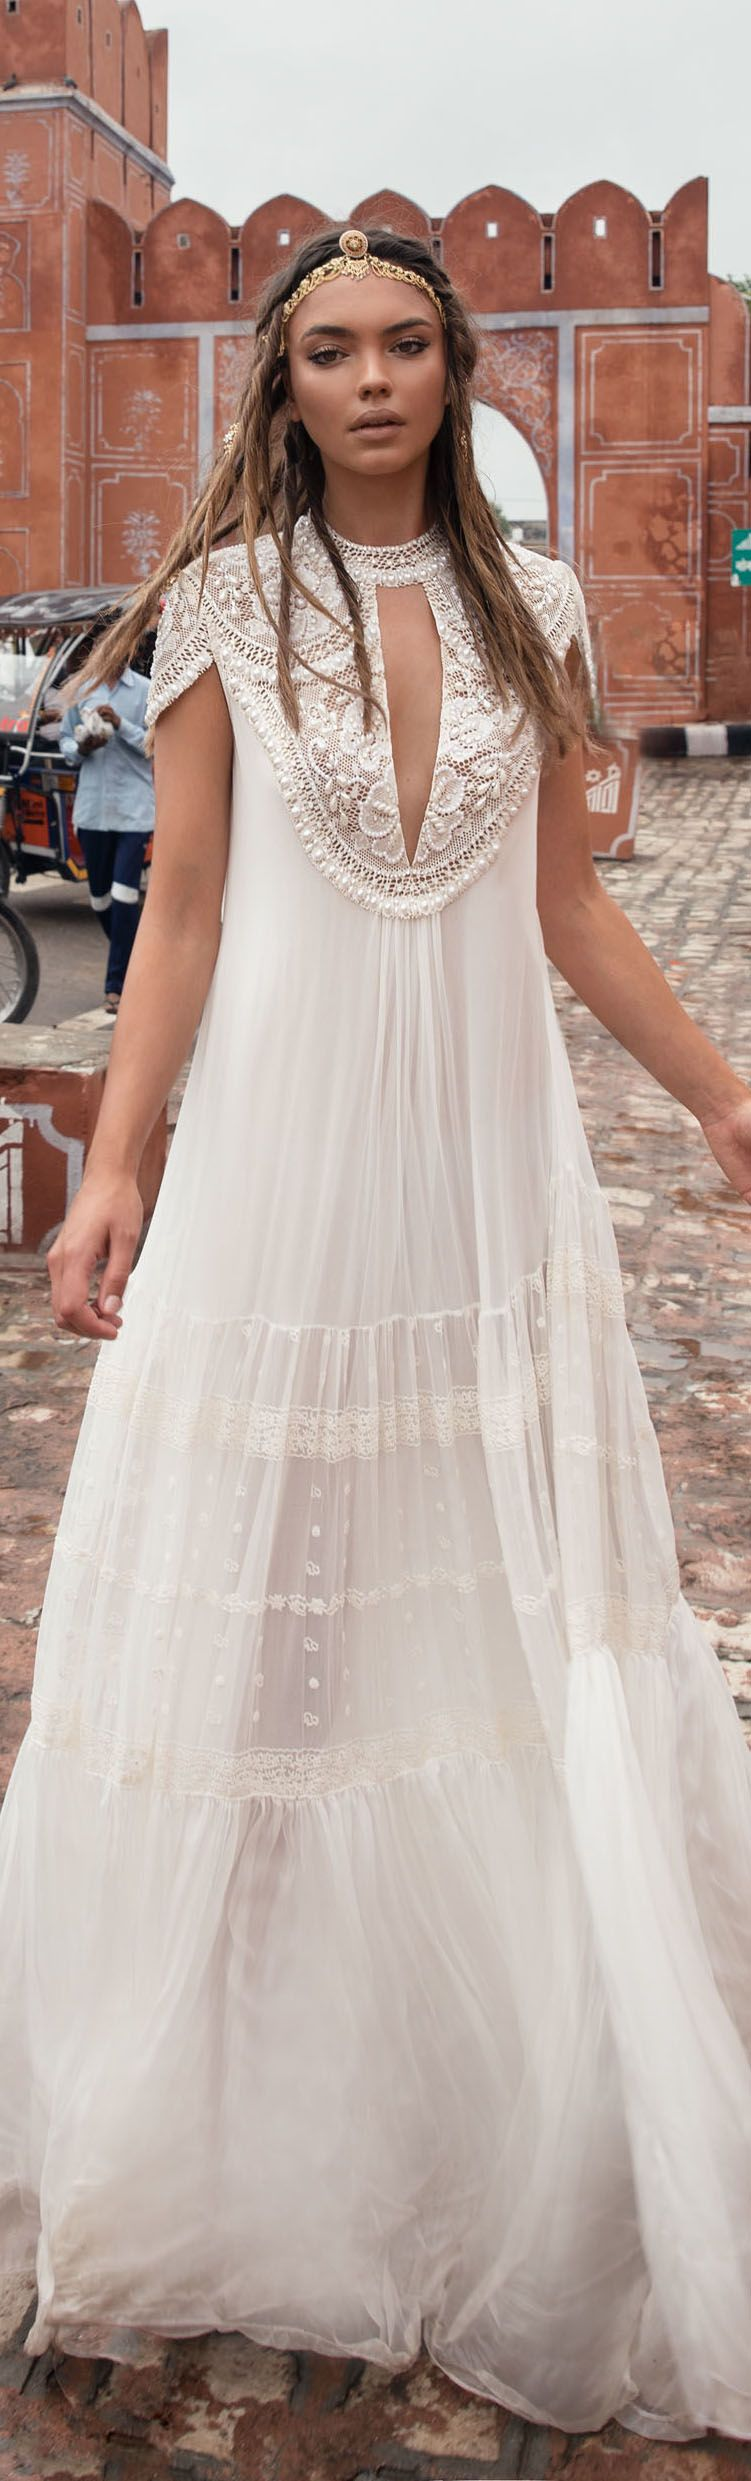 Bohemian wedding dress from charchy whiteoff white pinterest